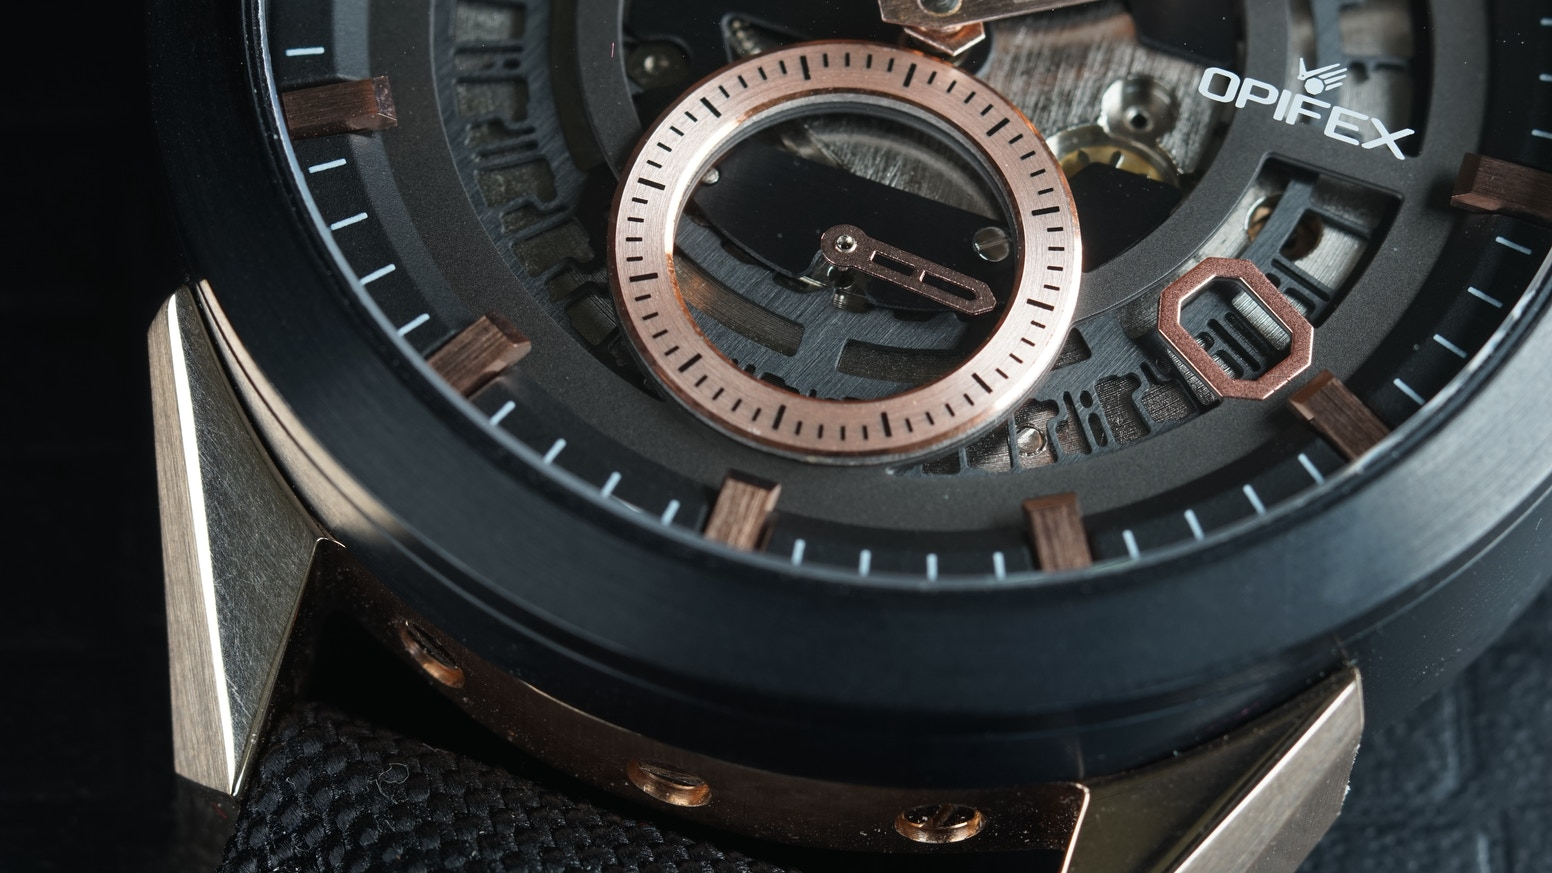 OPIFEX is a team of watchmakers that experience in Swiss watch manufacturing. We are proud to introduce our first timepiece, Venture, which equips our automatic calibre with unique skeleton date feature